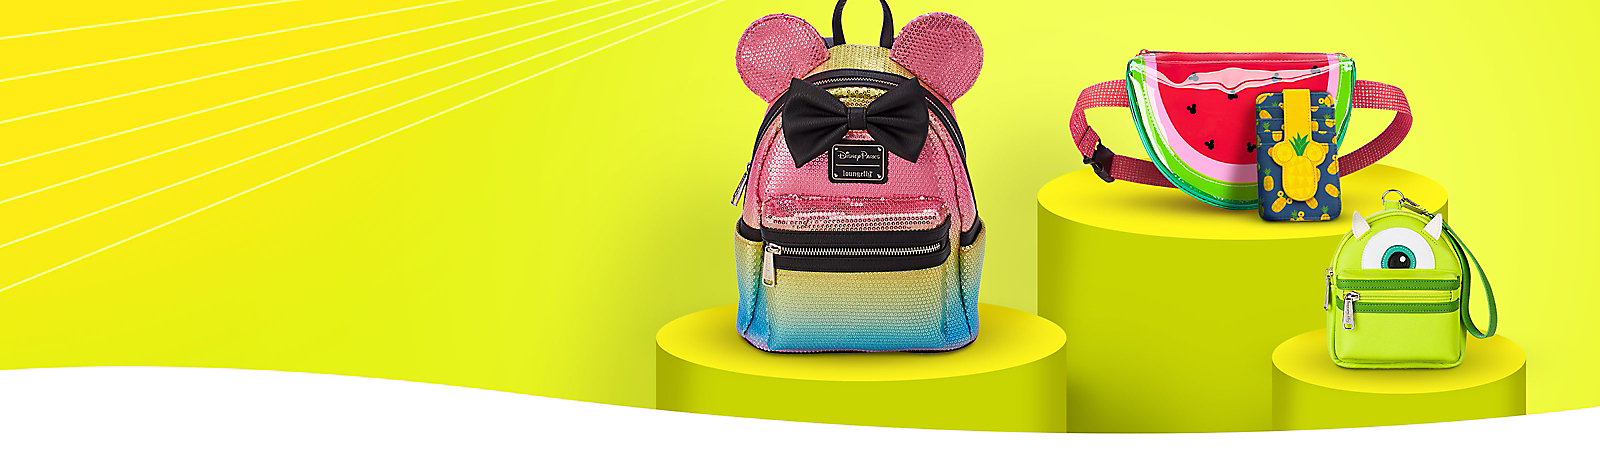 Minnie Bow and ears sequin backpack Watermelon belt bag Pineapple wallet Mike Wazowski mini backpack wristlet